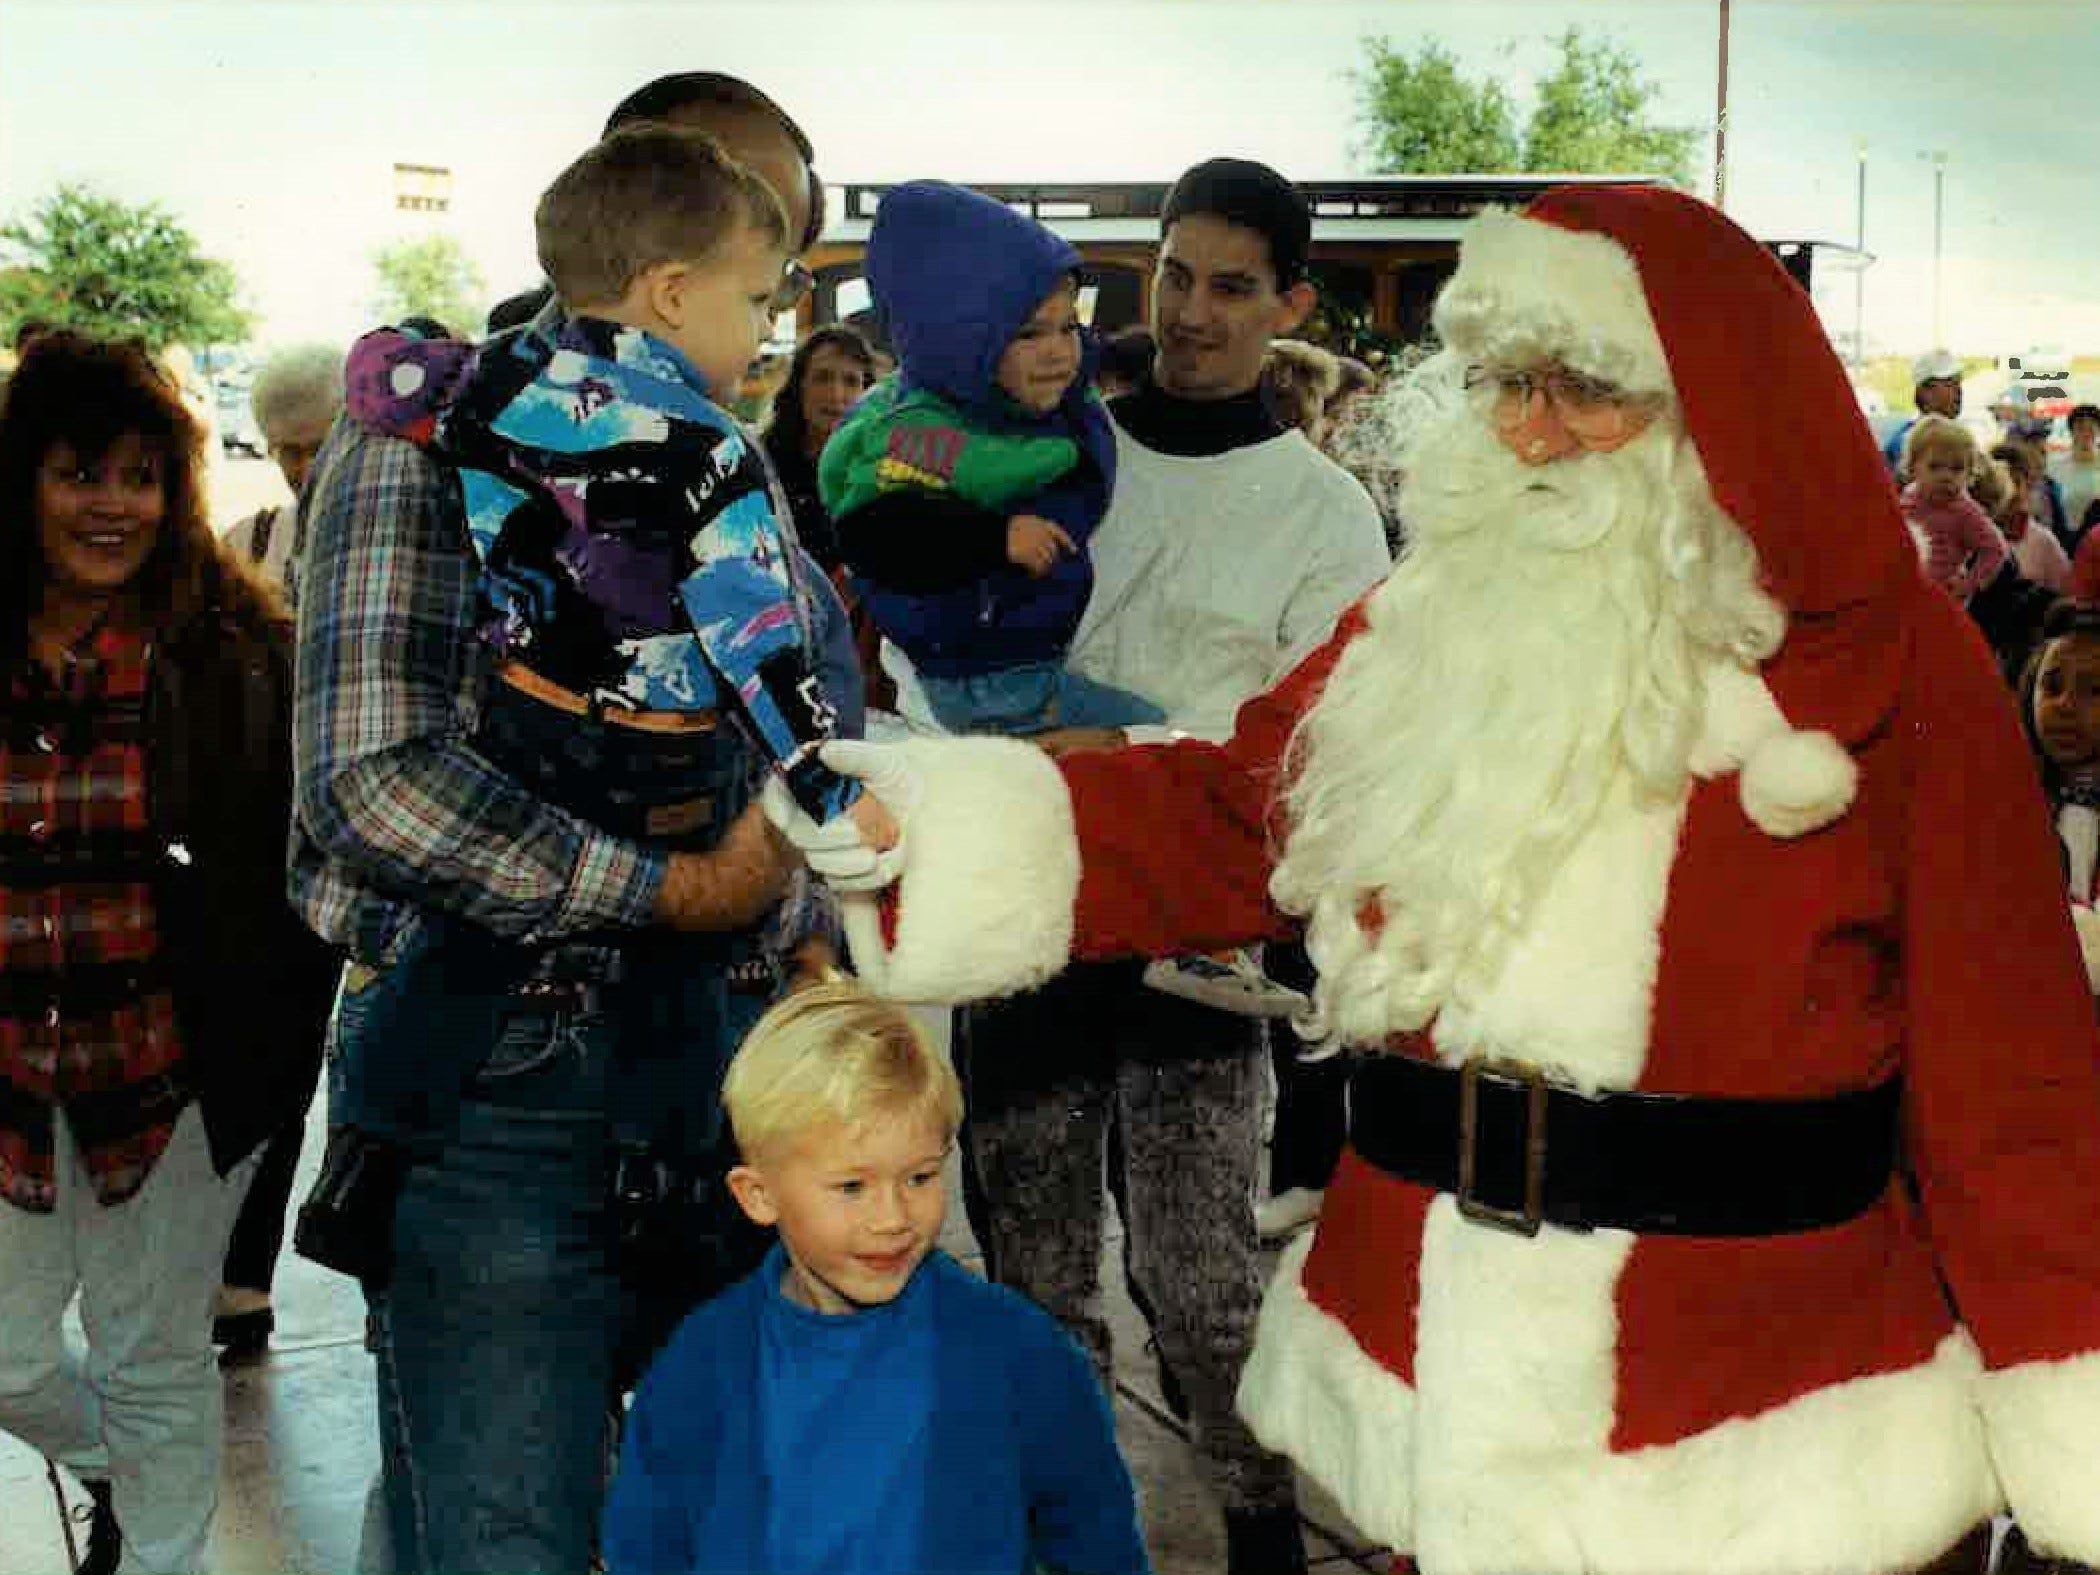 Santa arrives at Sunset Mall greeting youngsters, including Taylor Cox of Midland (front), just outside after getting off of the Trolley-Bus with a group of children in 1992.